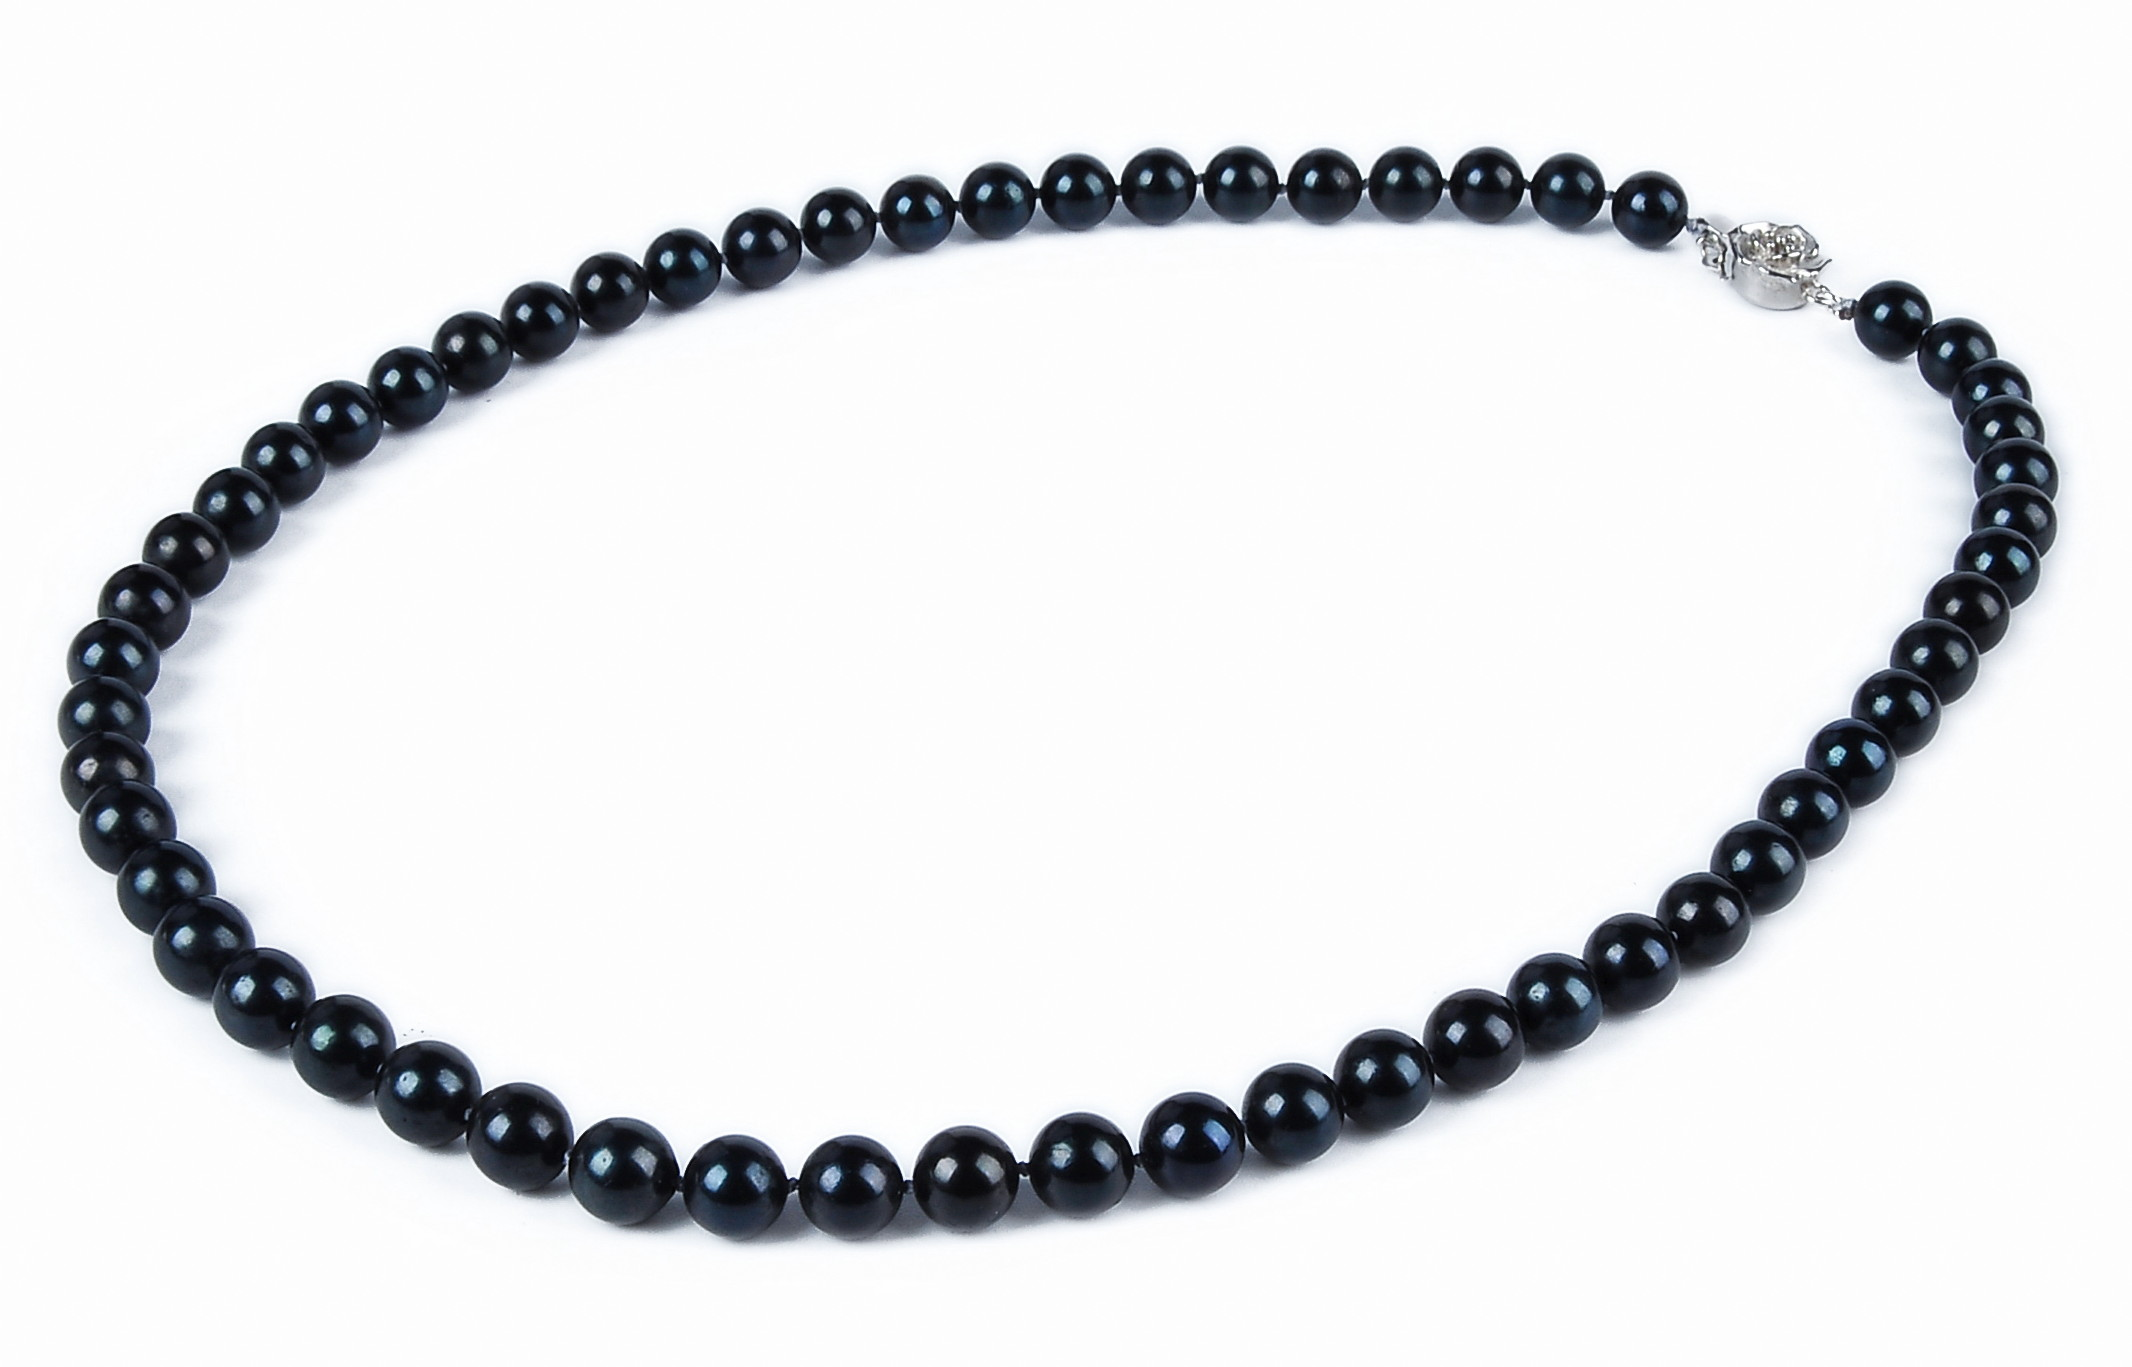 fdf589c8e1eb3a Akoya Pearl Necklace, 8MM AAA- Pure Black Saltwater Cultured Akoya ...